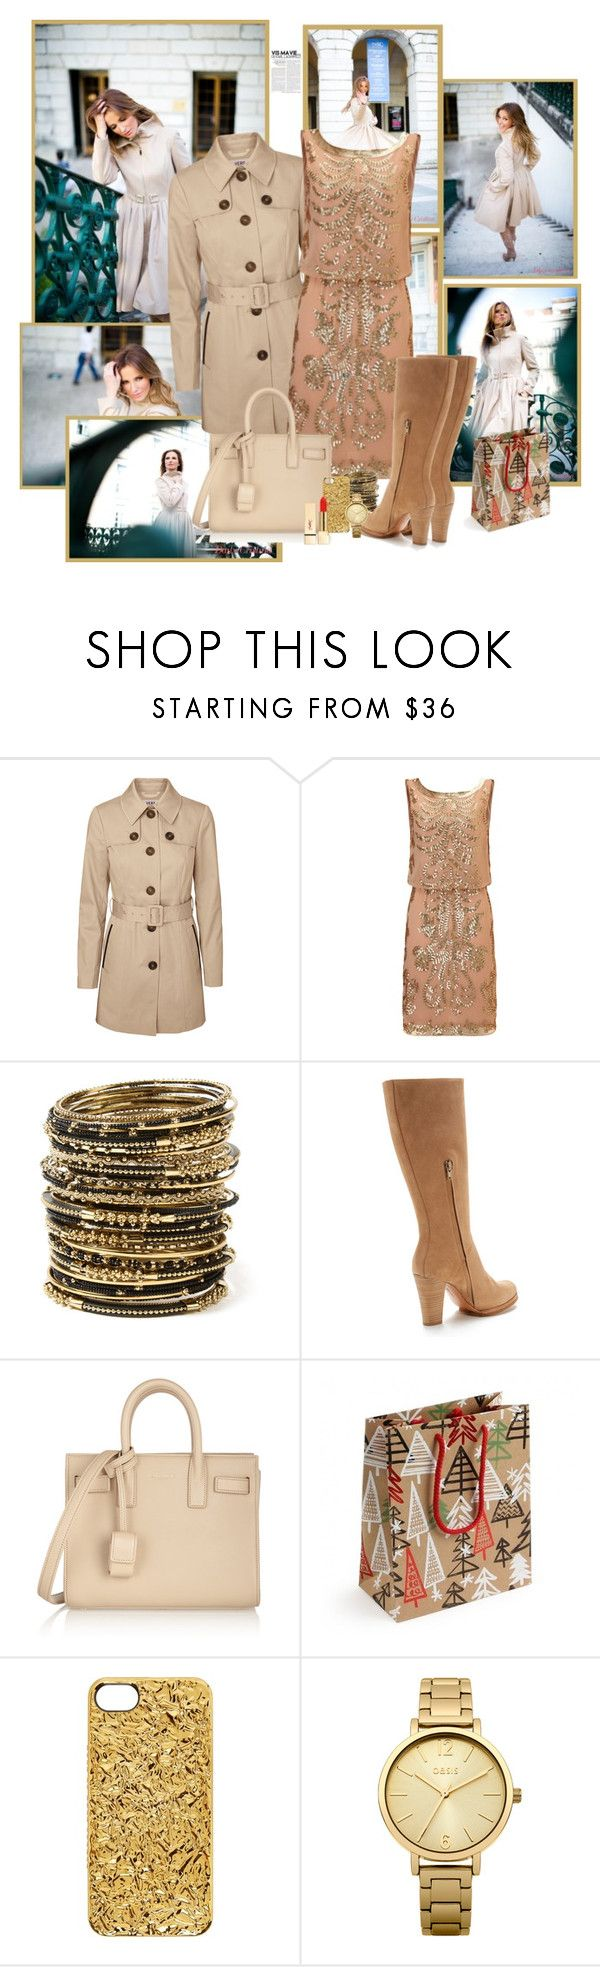 """""""Cristina Ferreira"""" by rfultrastars ❤ liked on Polyvore featuring Vero Moda, Ariella, Amrita Singh, Coclico, Yves Saint Laurent, Marc by Marc Jacobs, Oasis, PUR and cristinaferreira"""